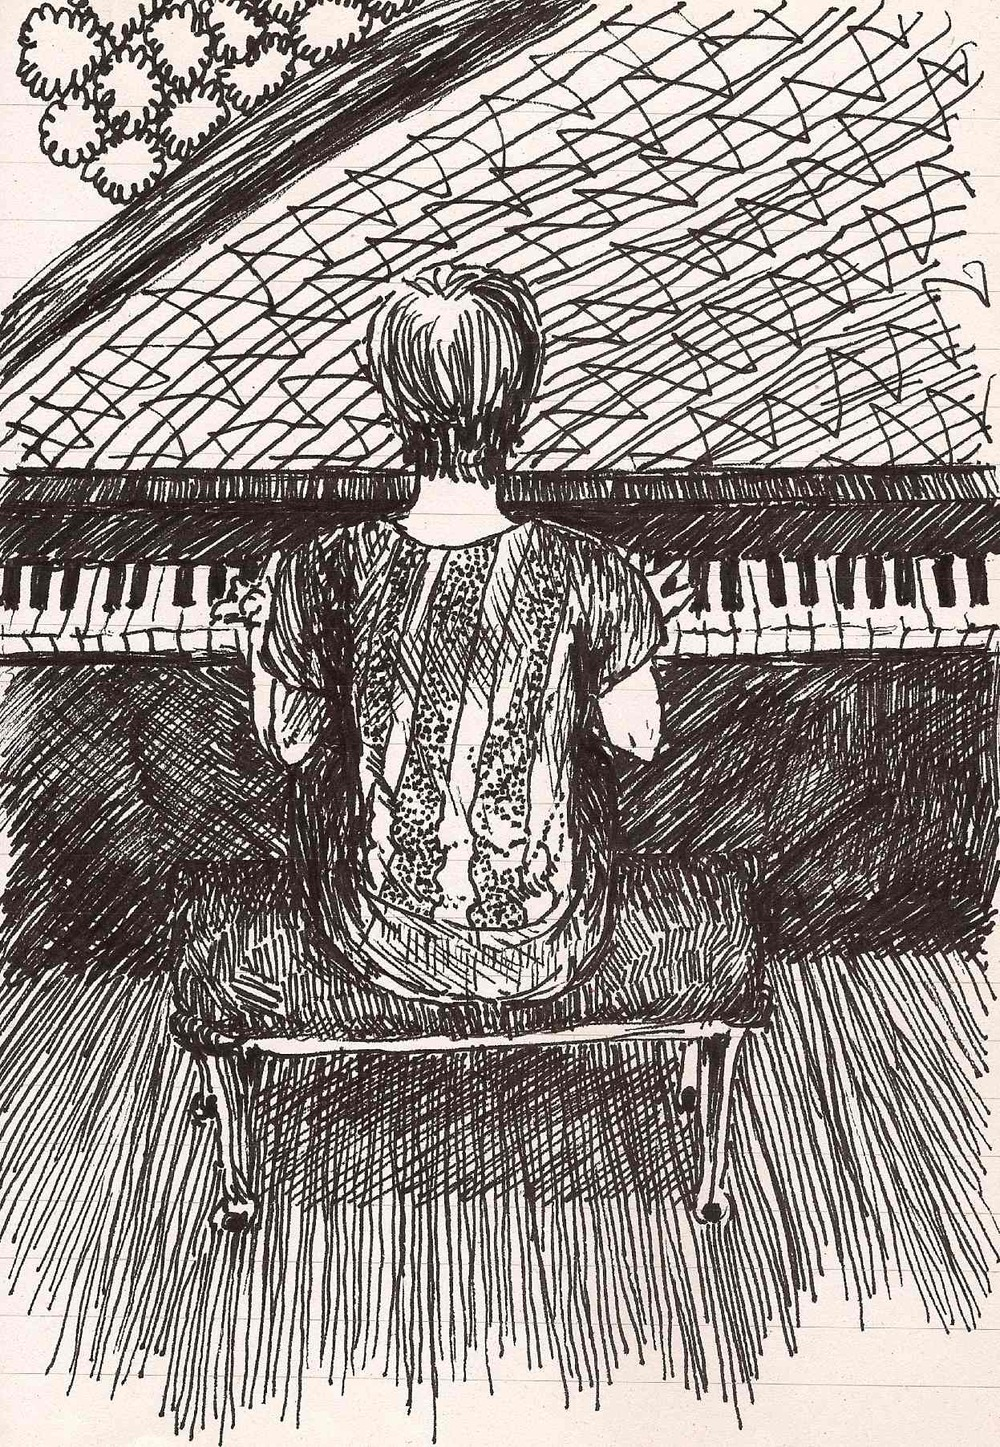 cari-palazzolo-piano-drawing-2008.jpg